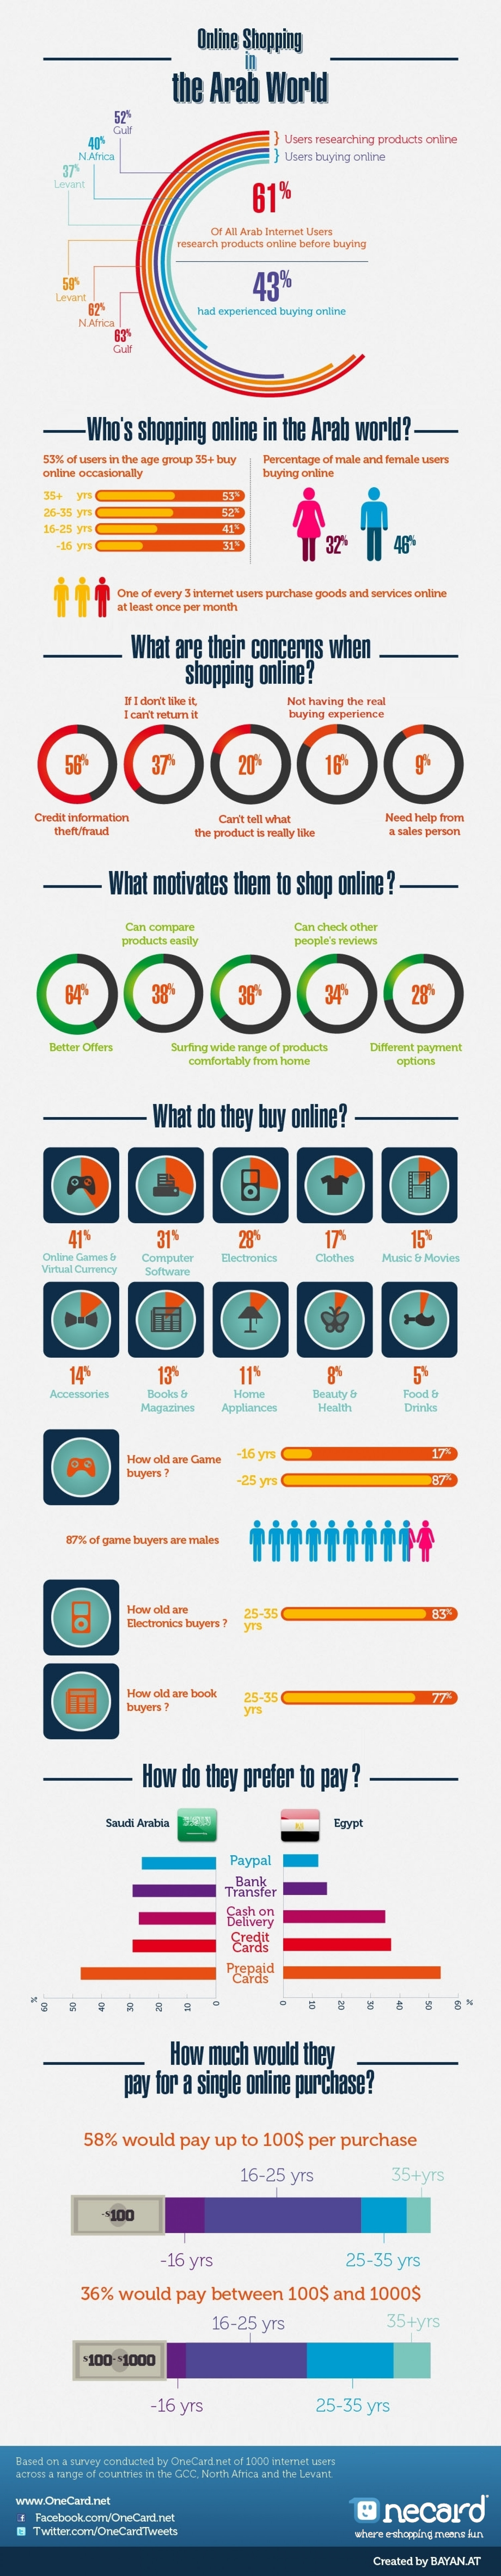 Online Shopping in the Arab World Infographic